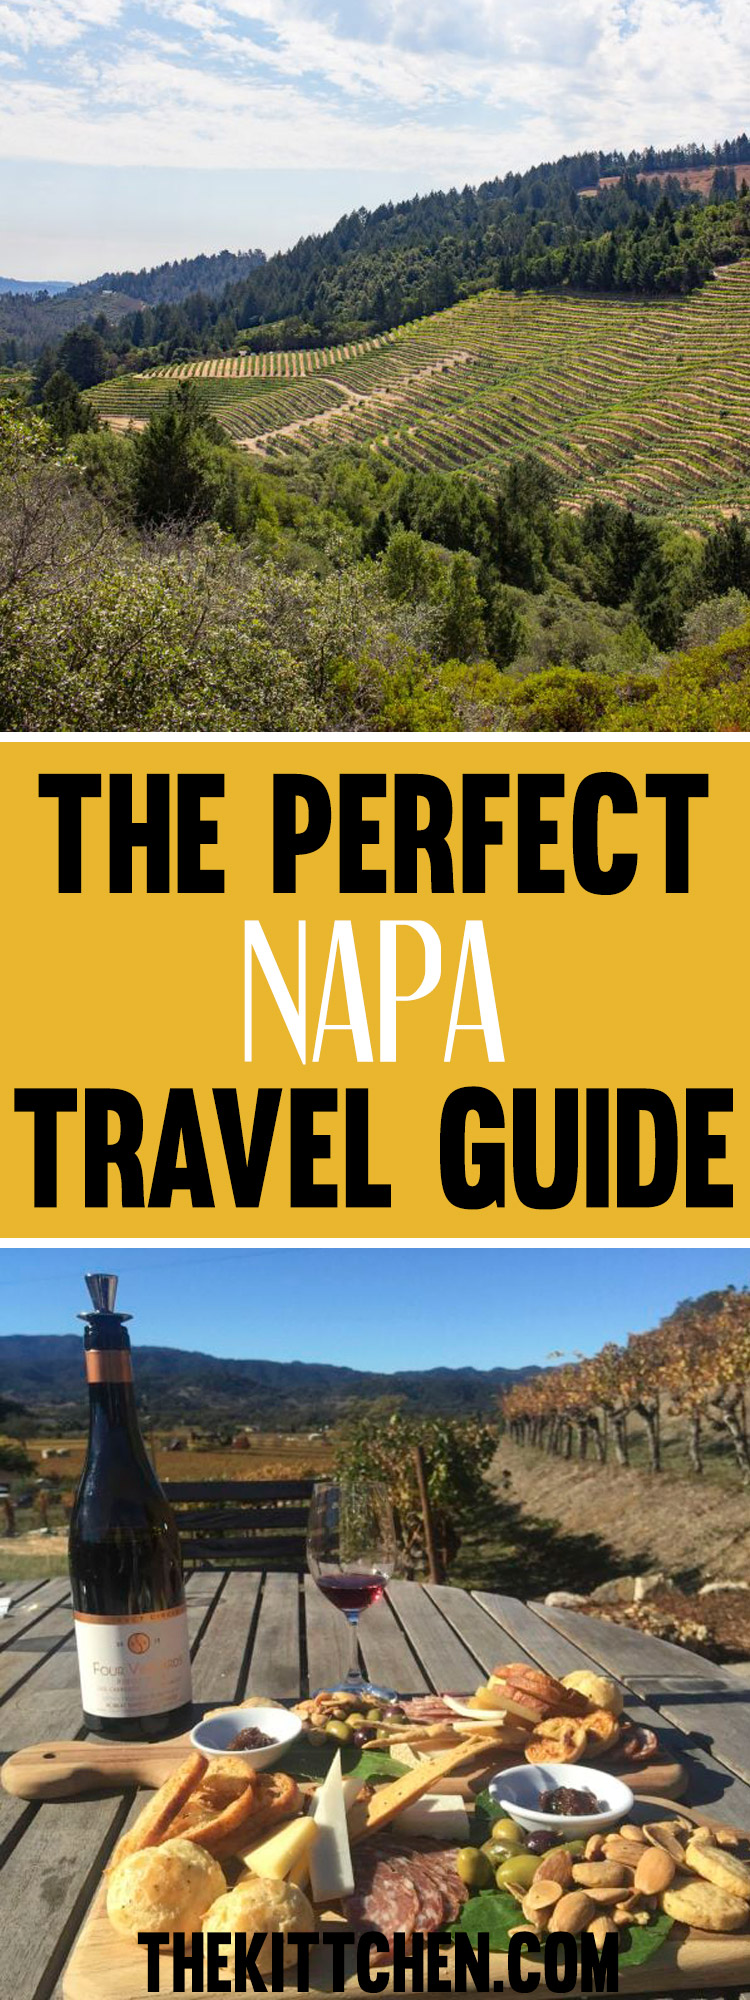 The Napa Travel Guide